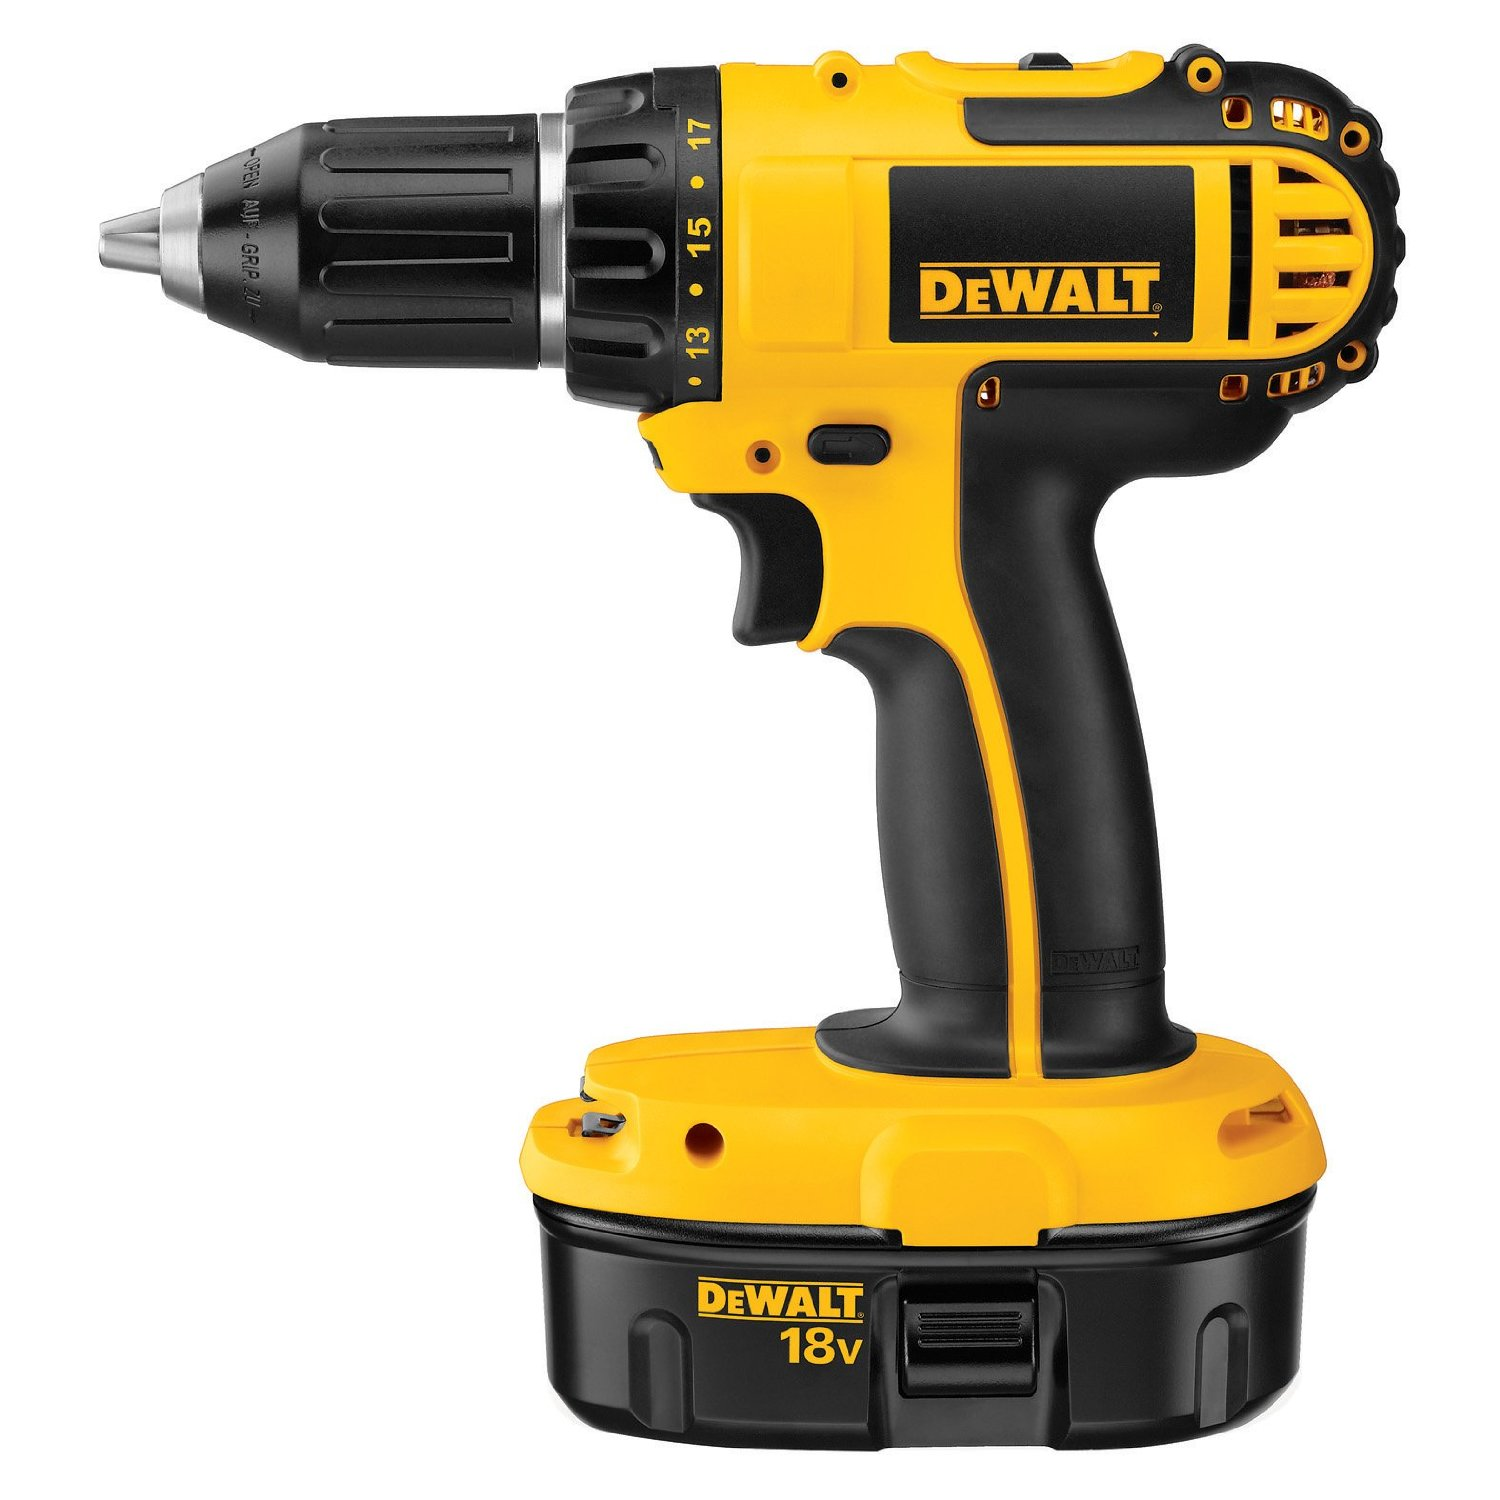 Cordless 18-Volt Compact Drill/Driver is the best seller cordless